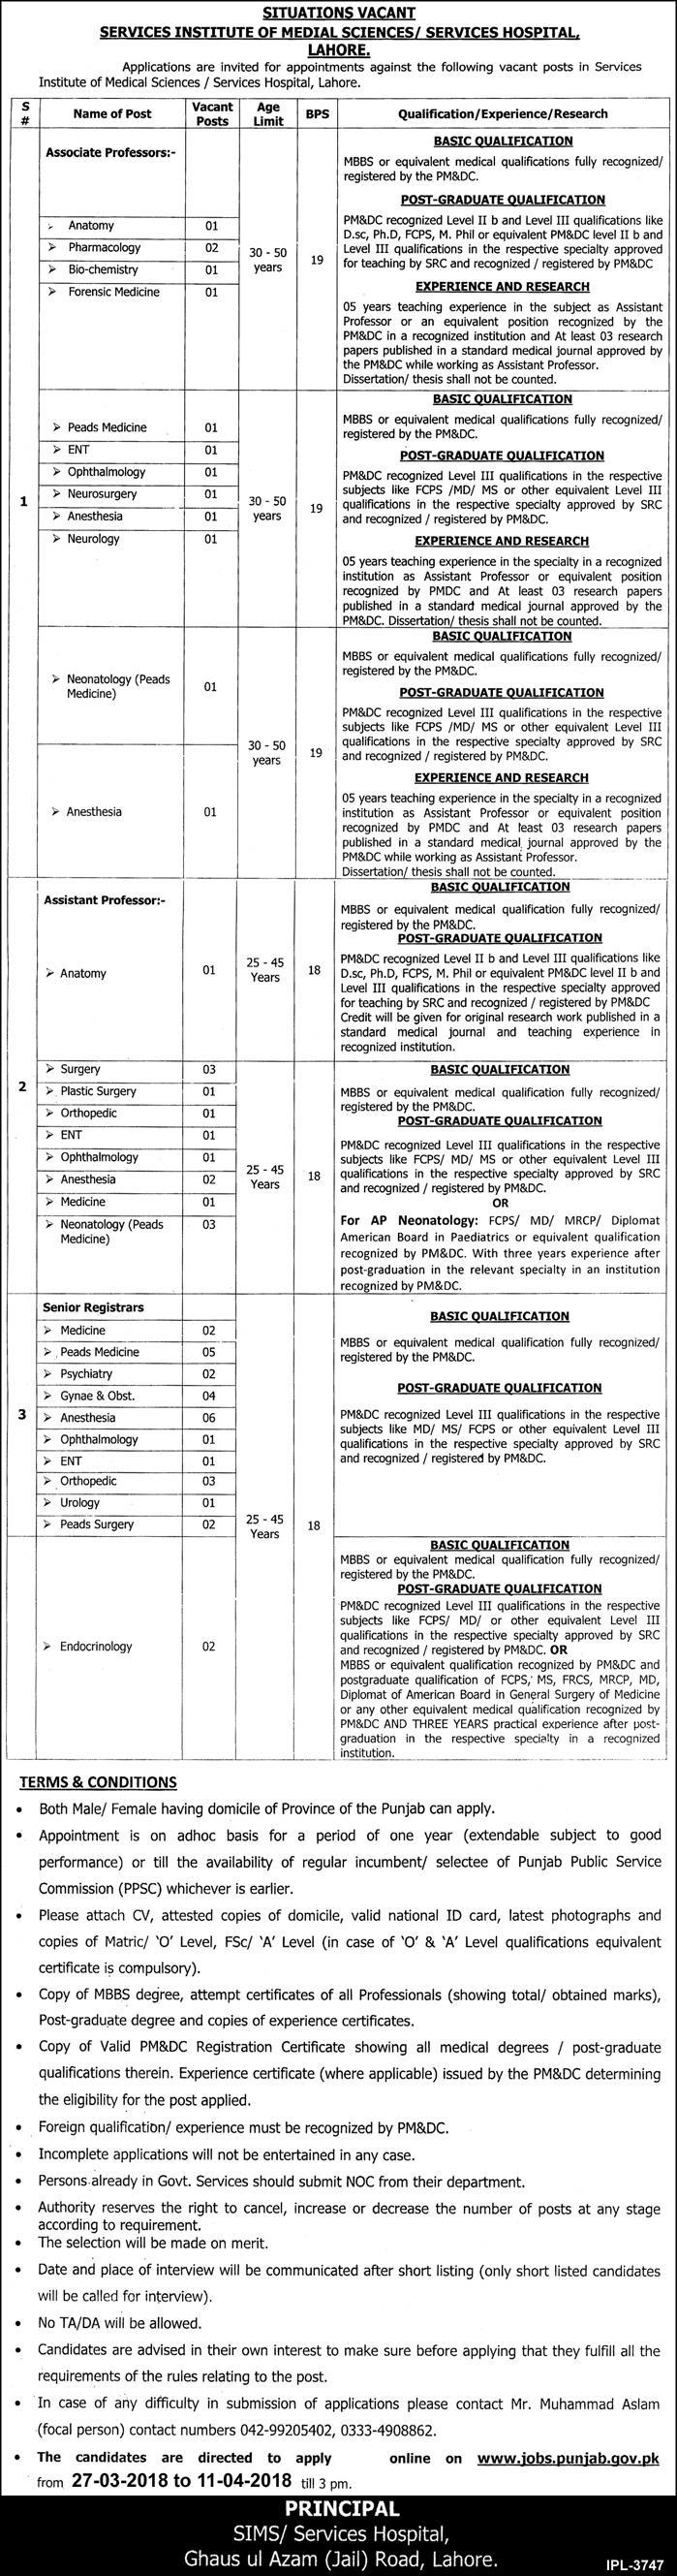 Jobs in Services Institute of Medical Sciences/Services Hospital Lahore Daily Express Newspaper 28 March 2018